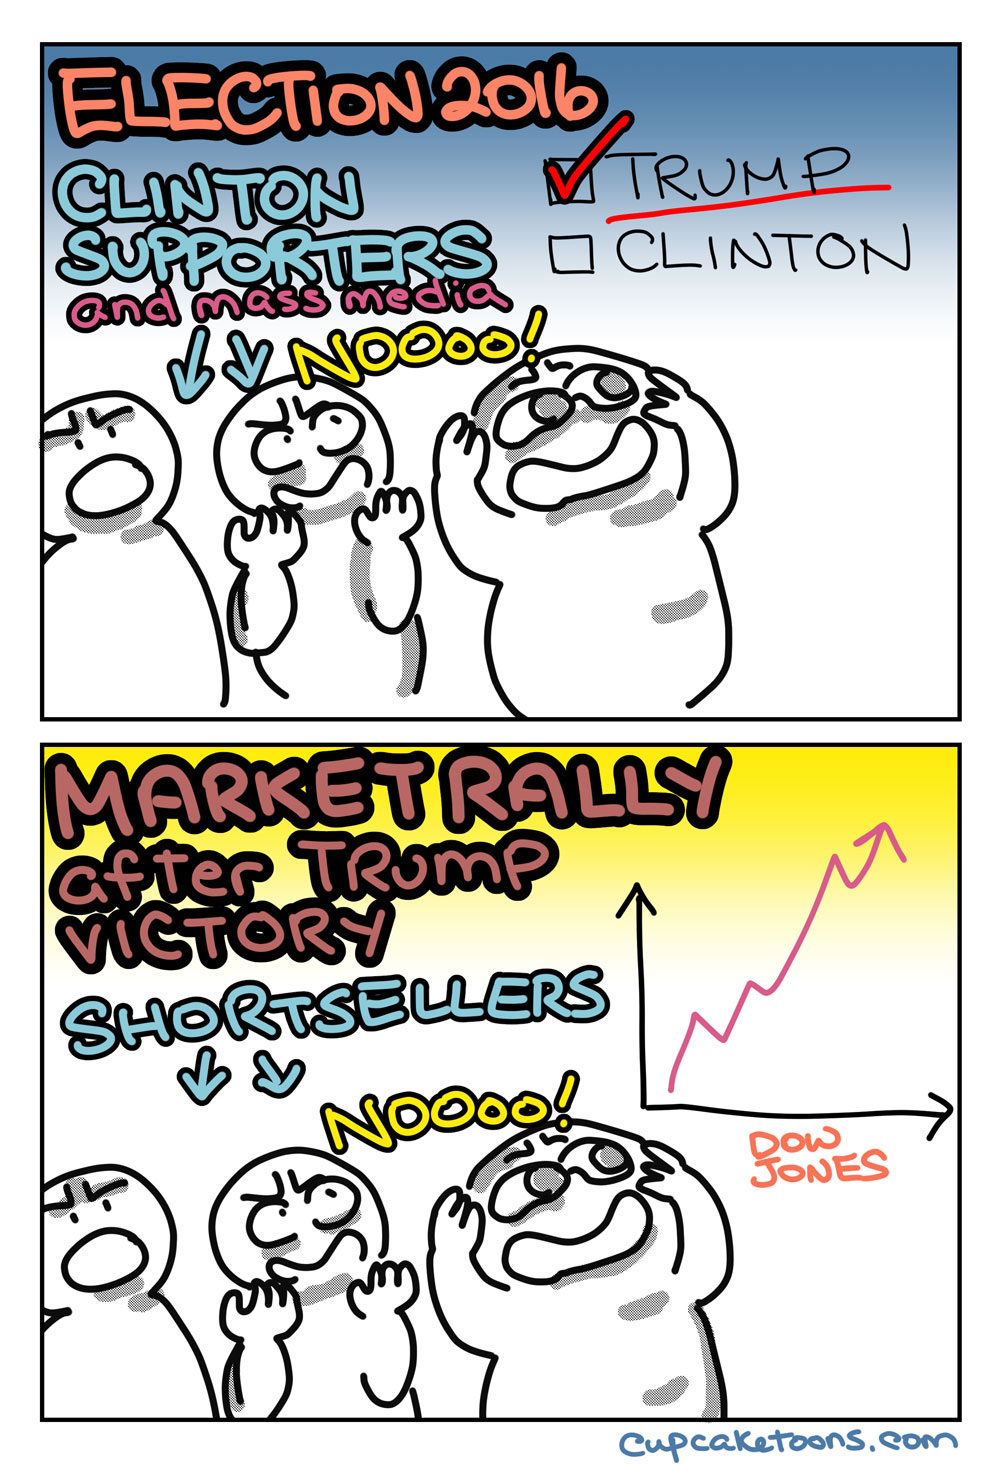 Election 2016 result and market reaction cartoon